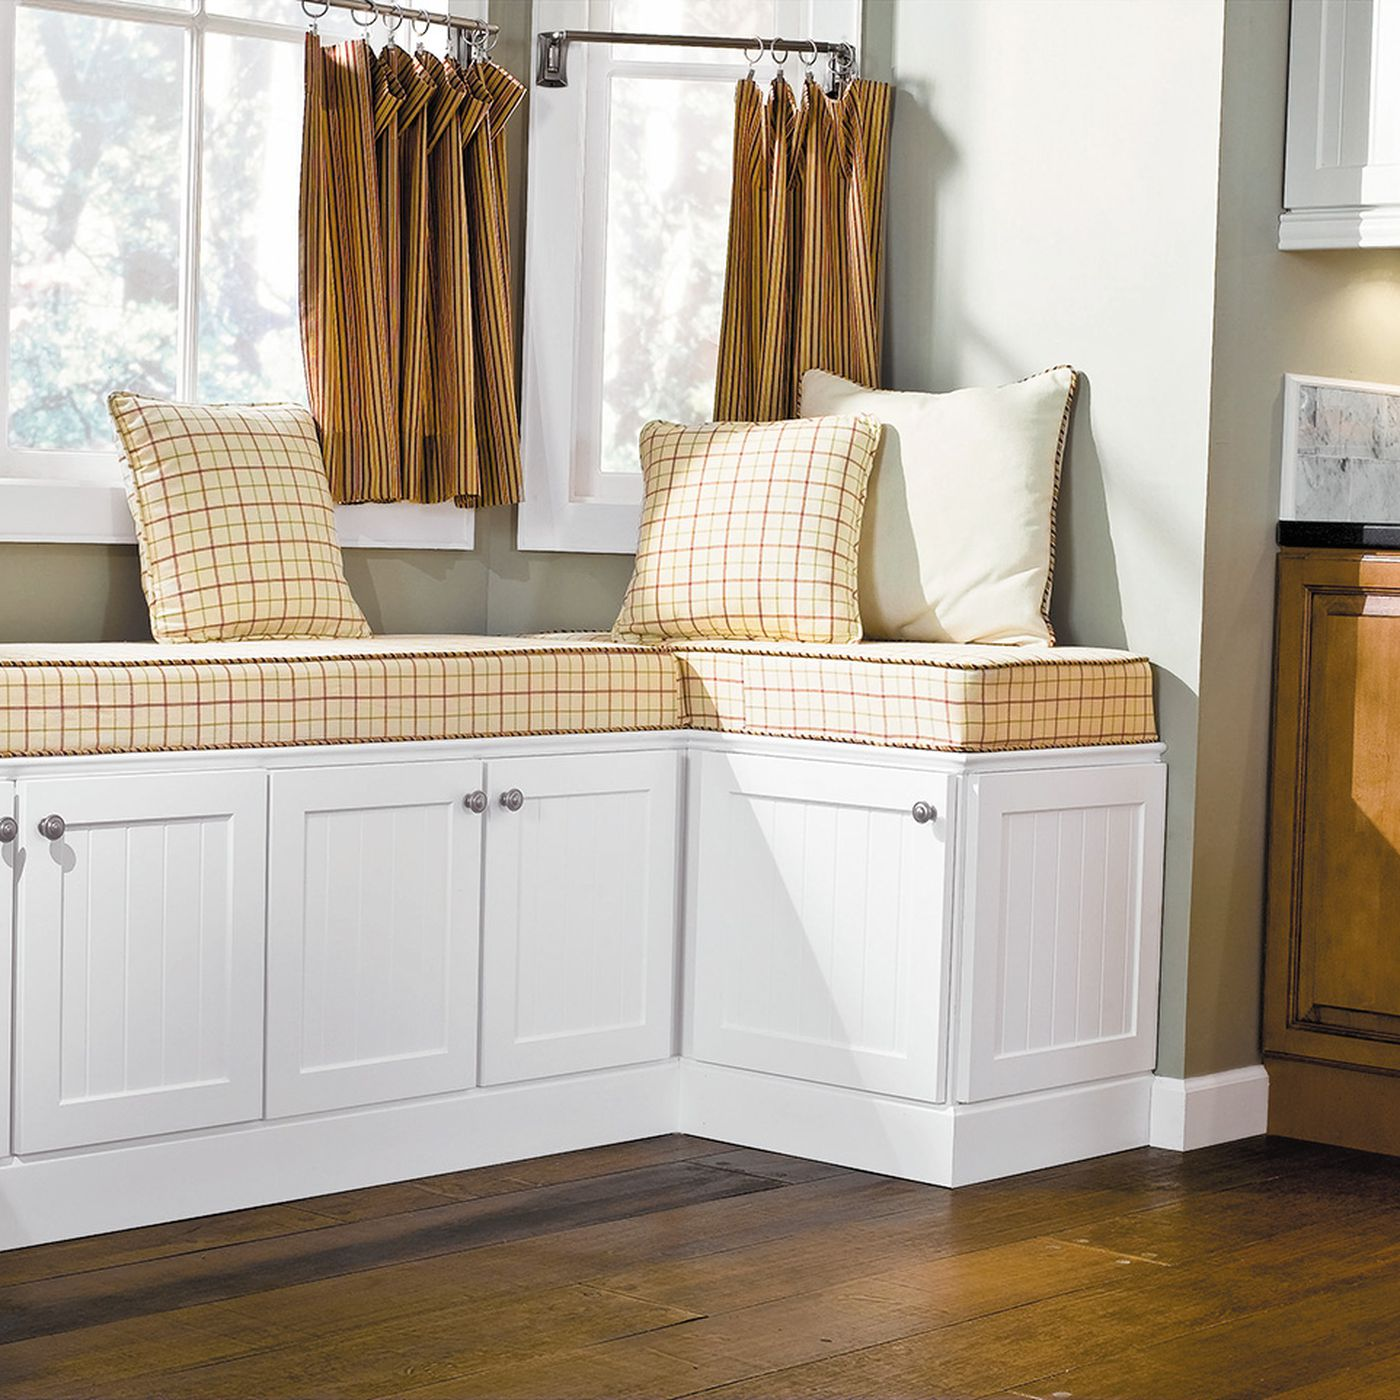 Build A Custom Look Window Seat Using Stock Kitchen Cabinets This Old House